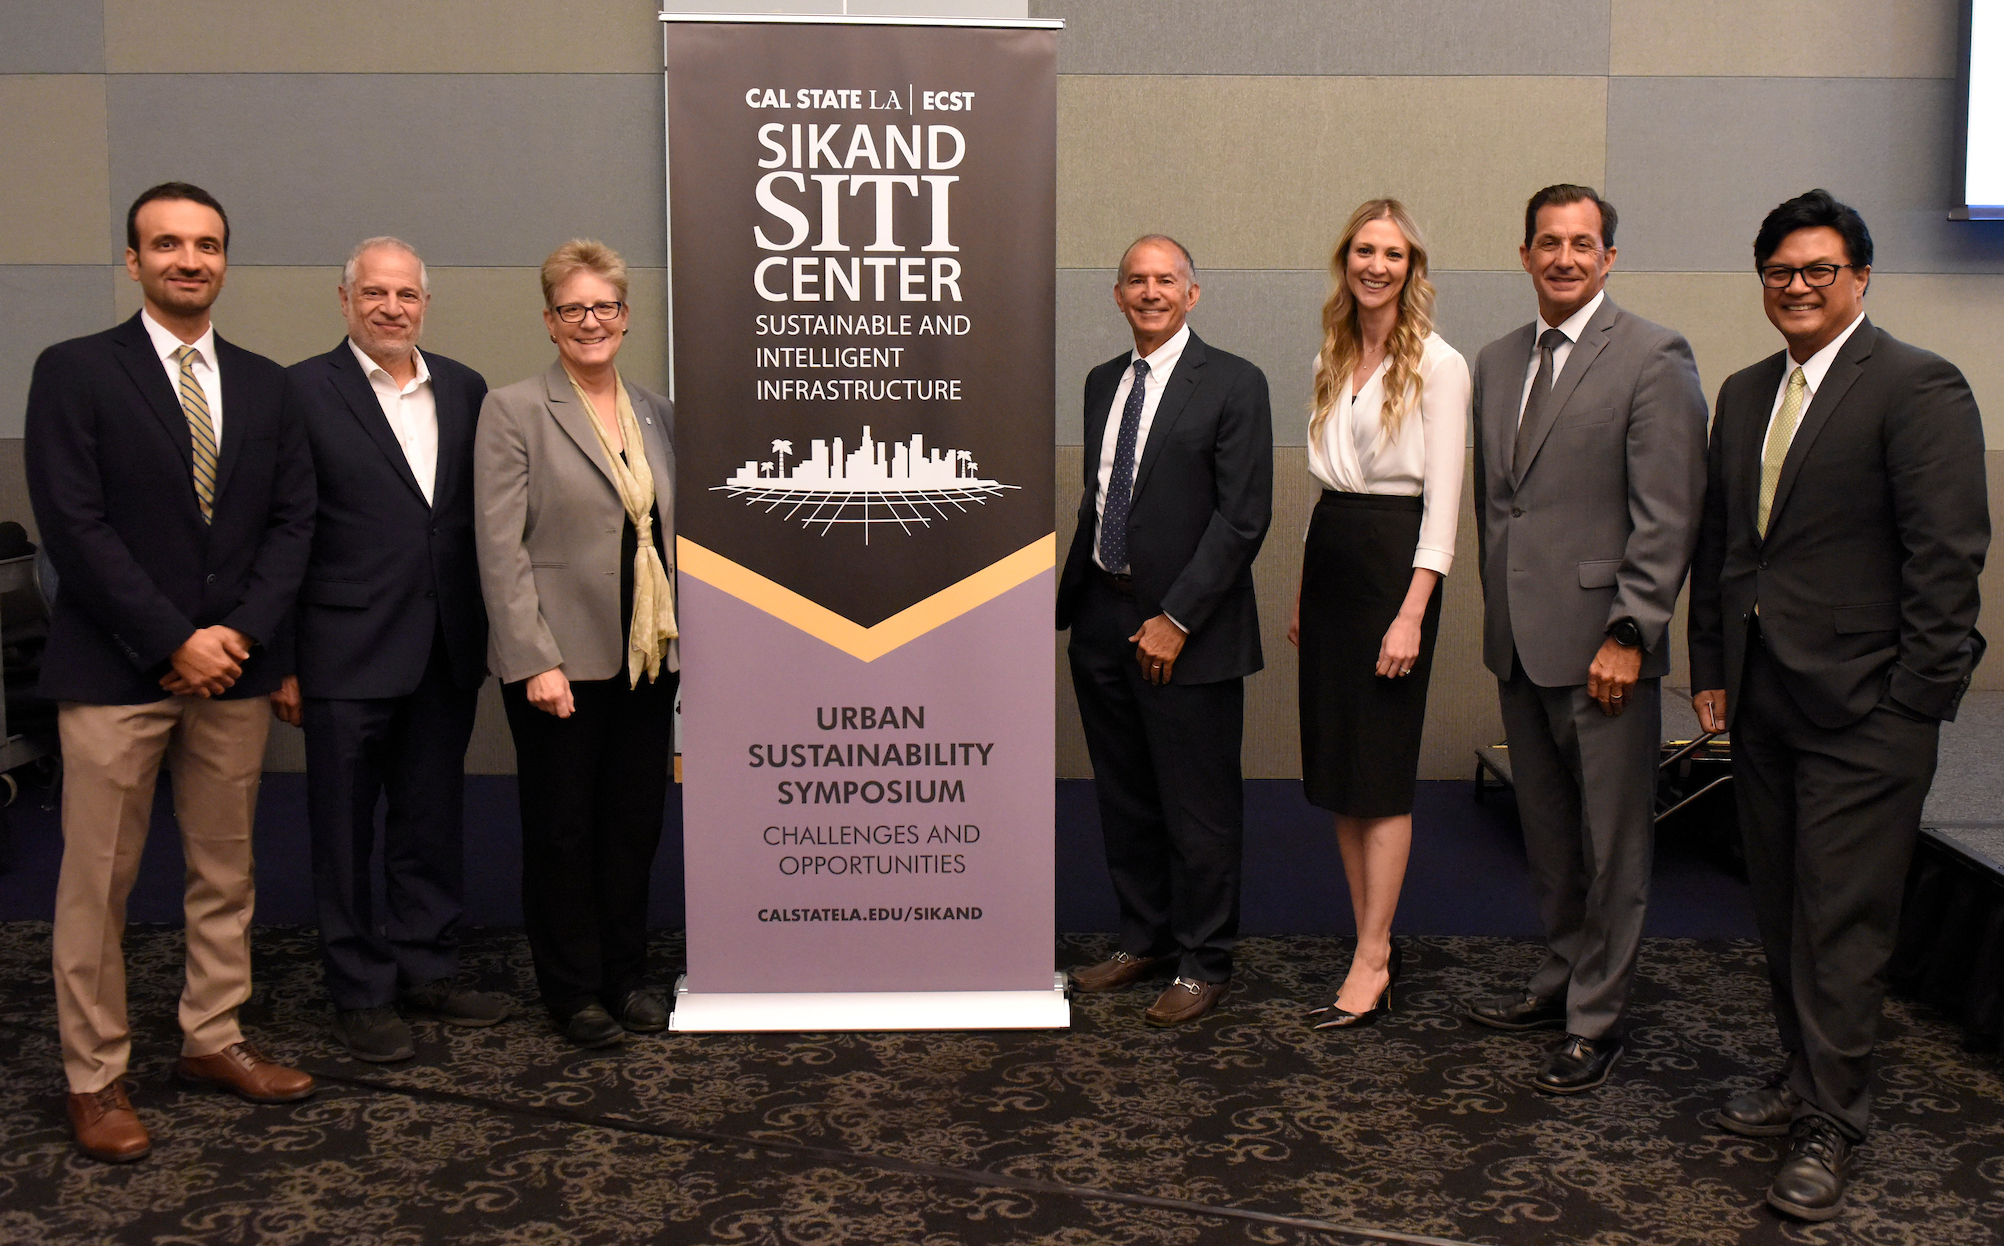 Left to right, Mehran Mazari, Raphael Sonenshein, Emily Allen, Mark Sikand, Lauren Faber O'Connor, Mark Pestrella, and Cris Liban.